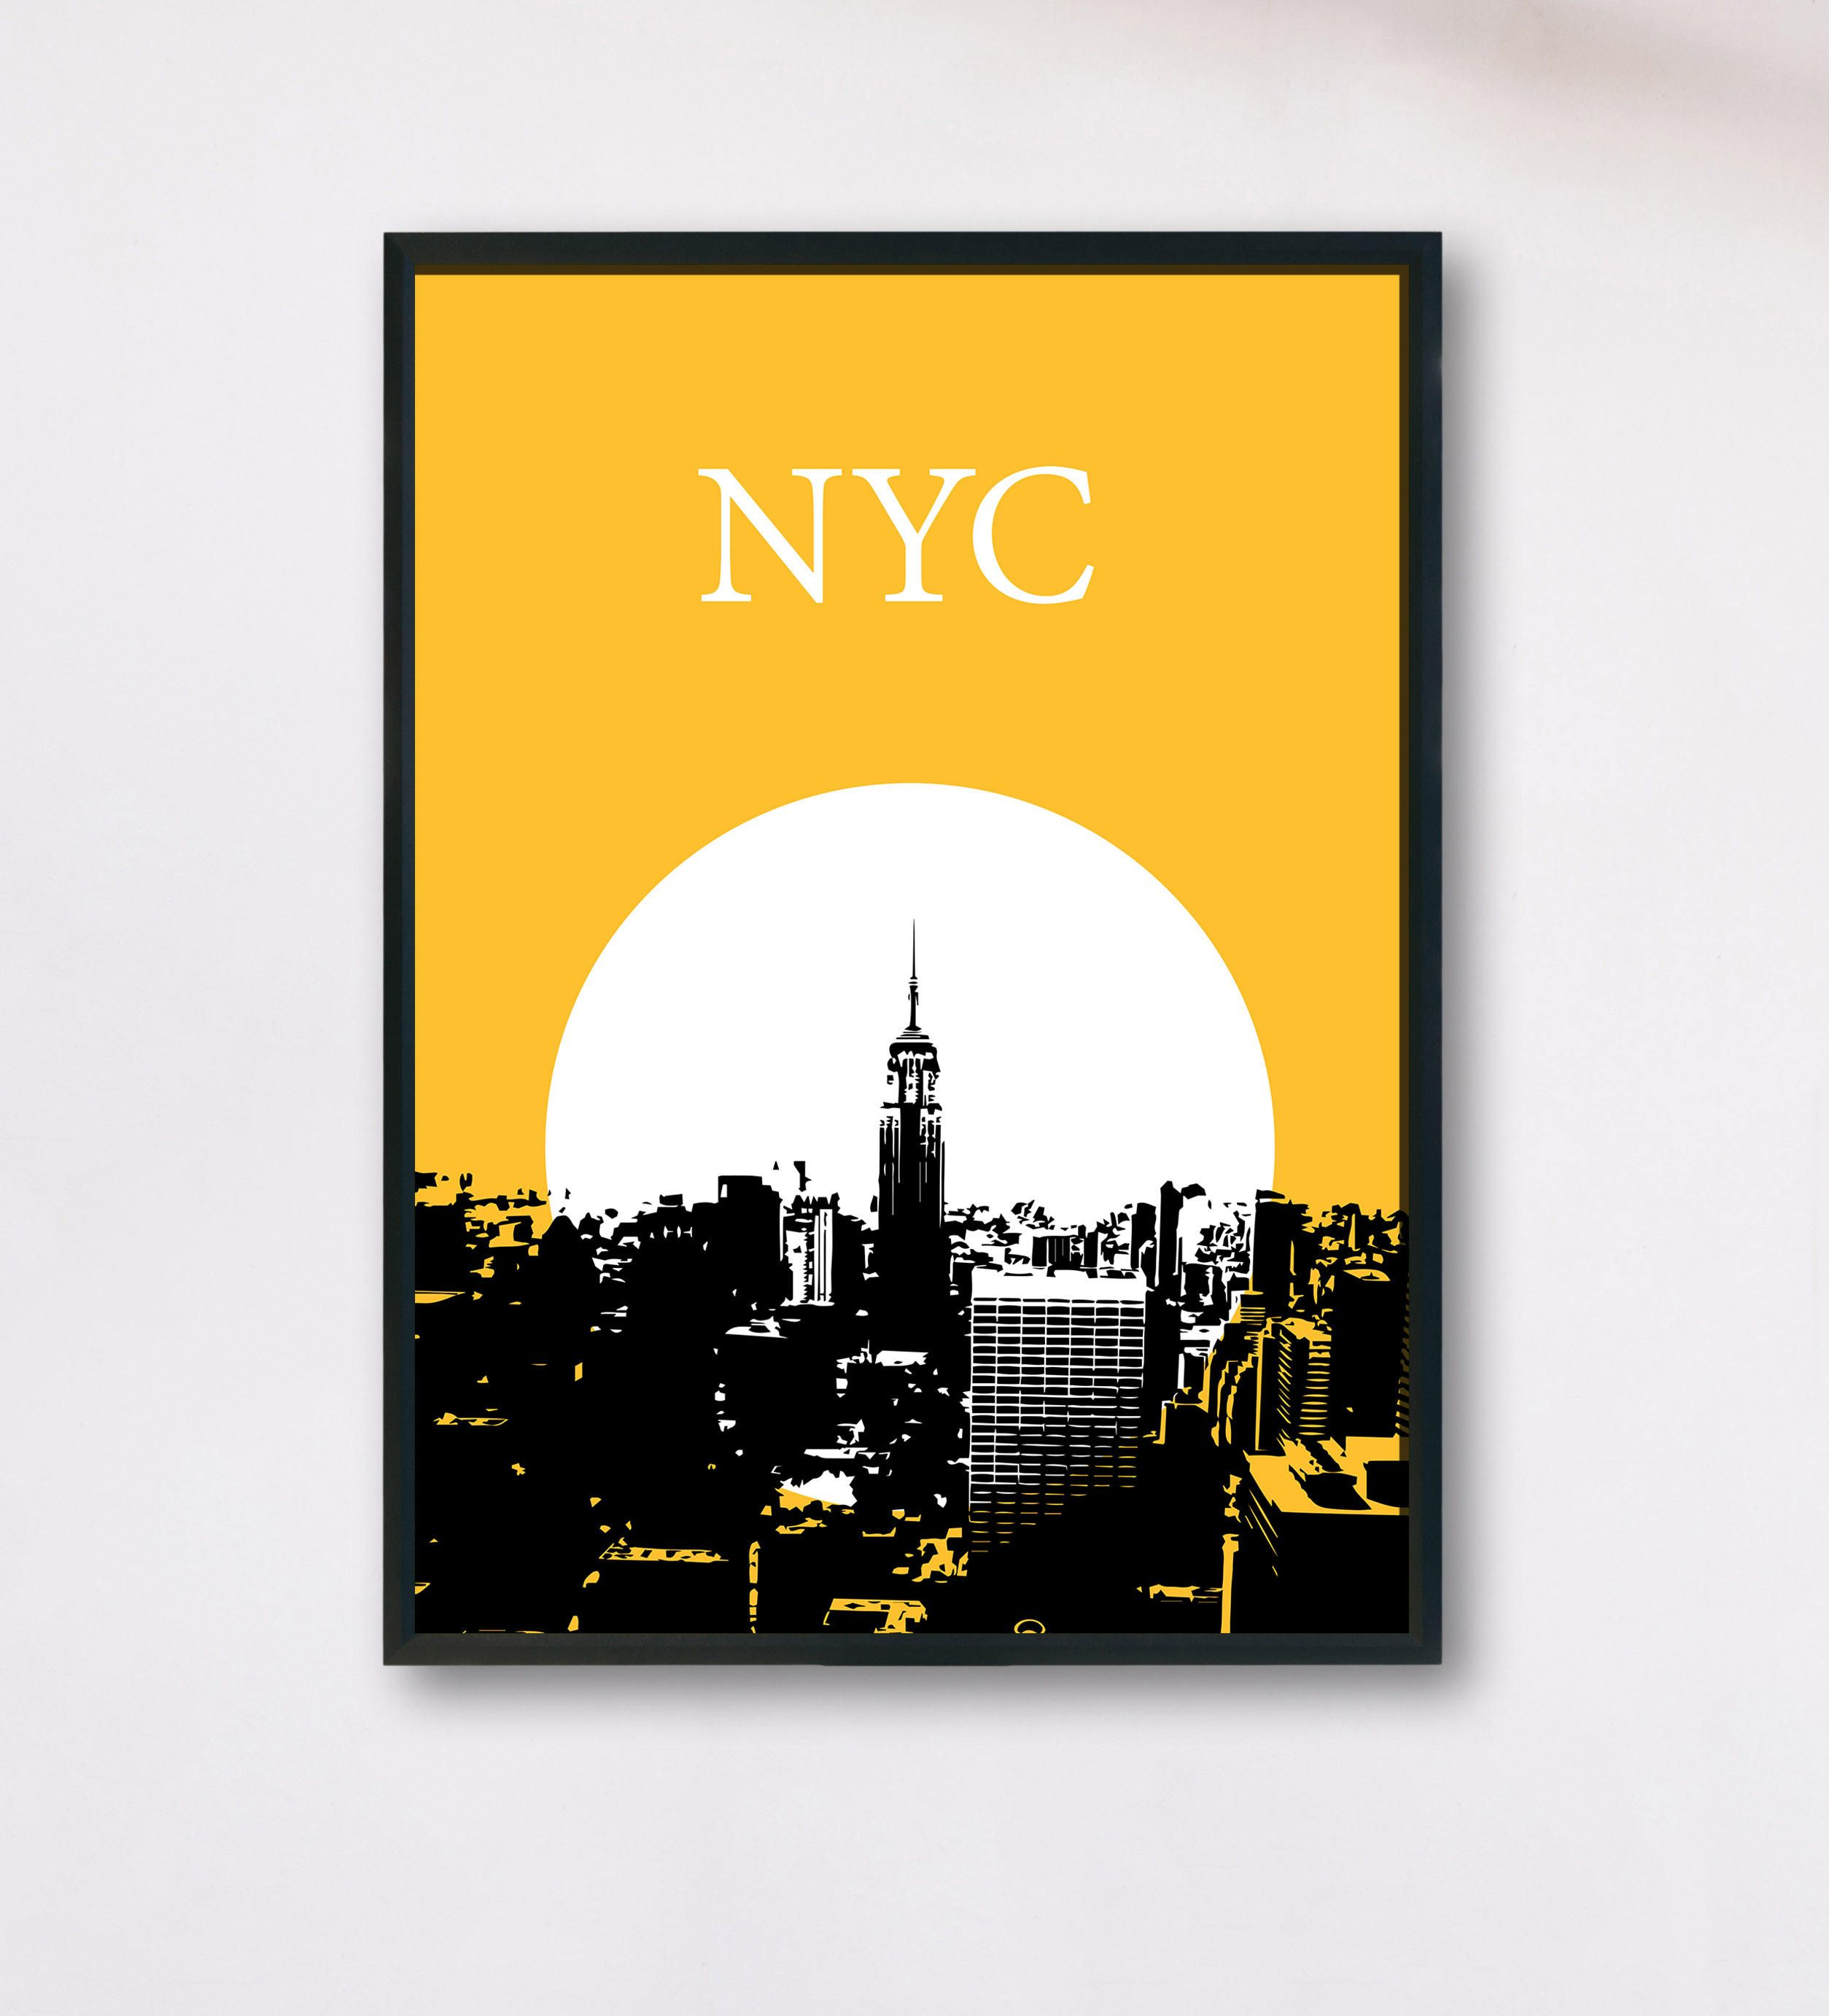 Excited to share the latest addition to my #etsy shop: NYC Poster ...